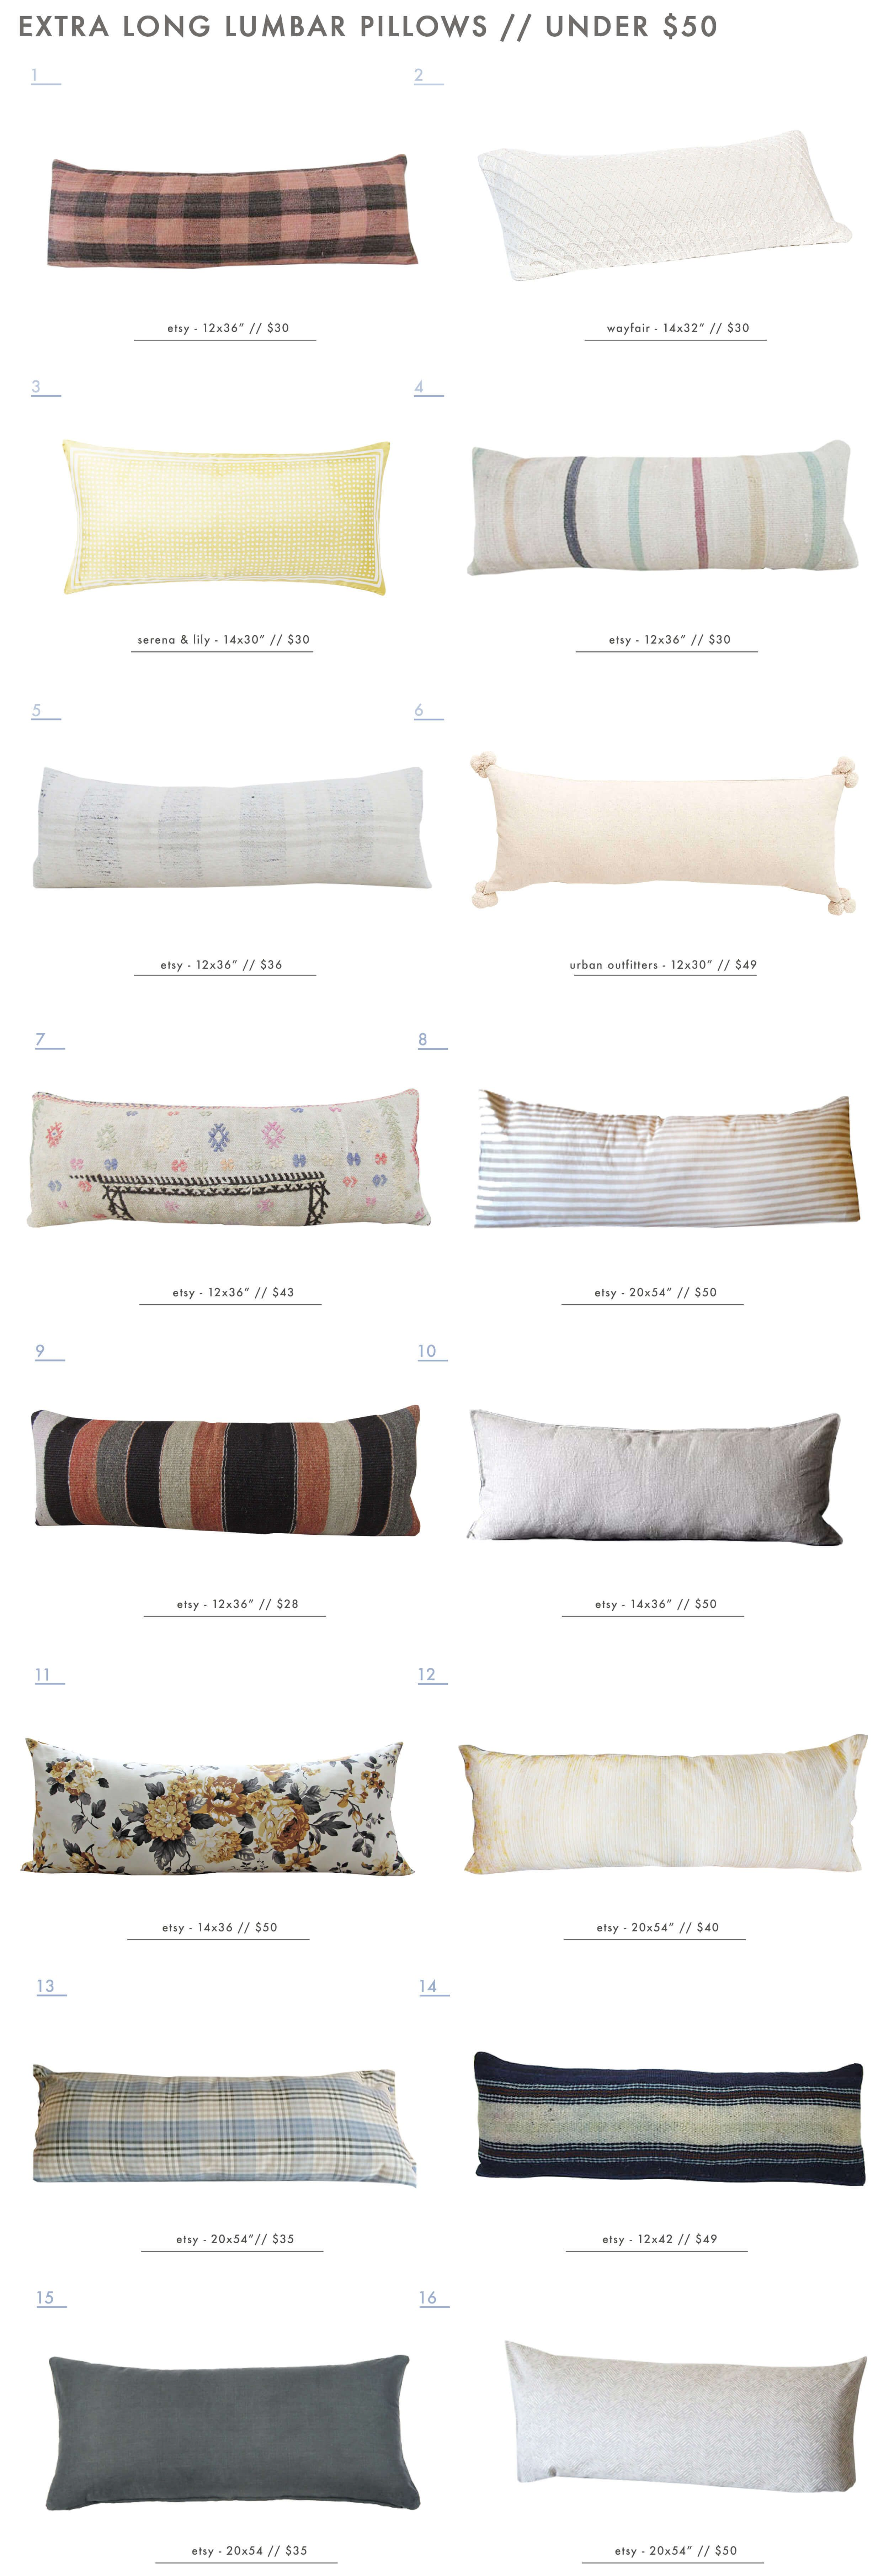 Pin by Skye Brown on Pillows | Long